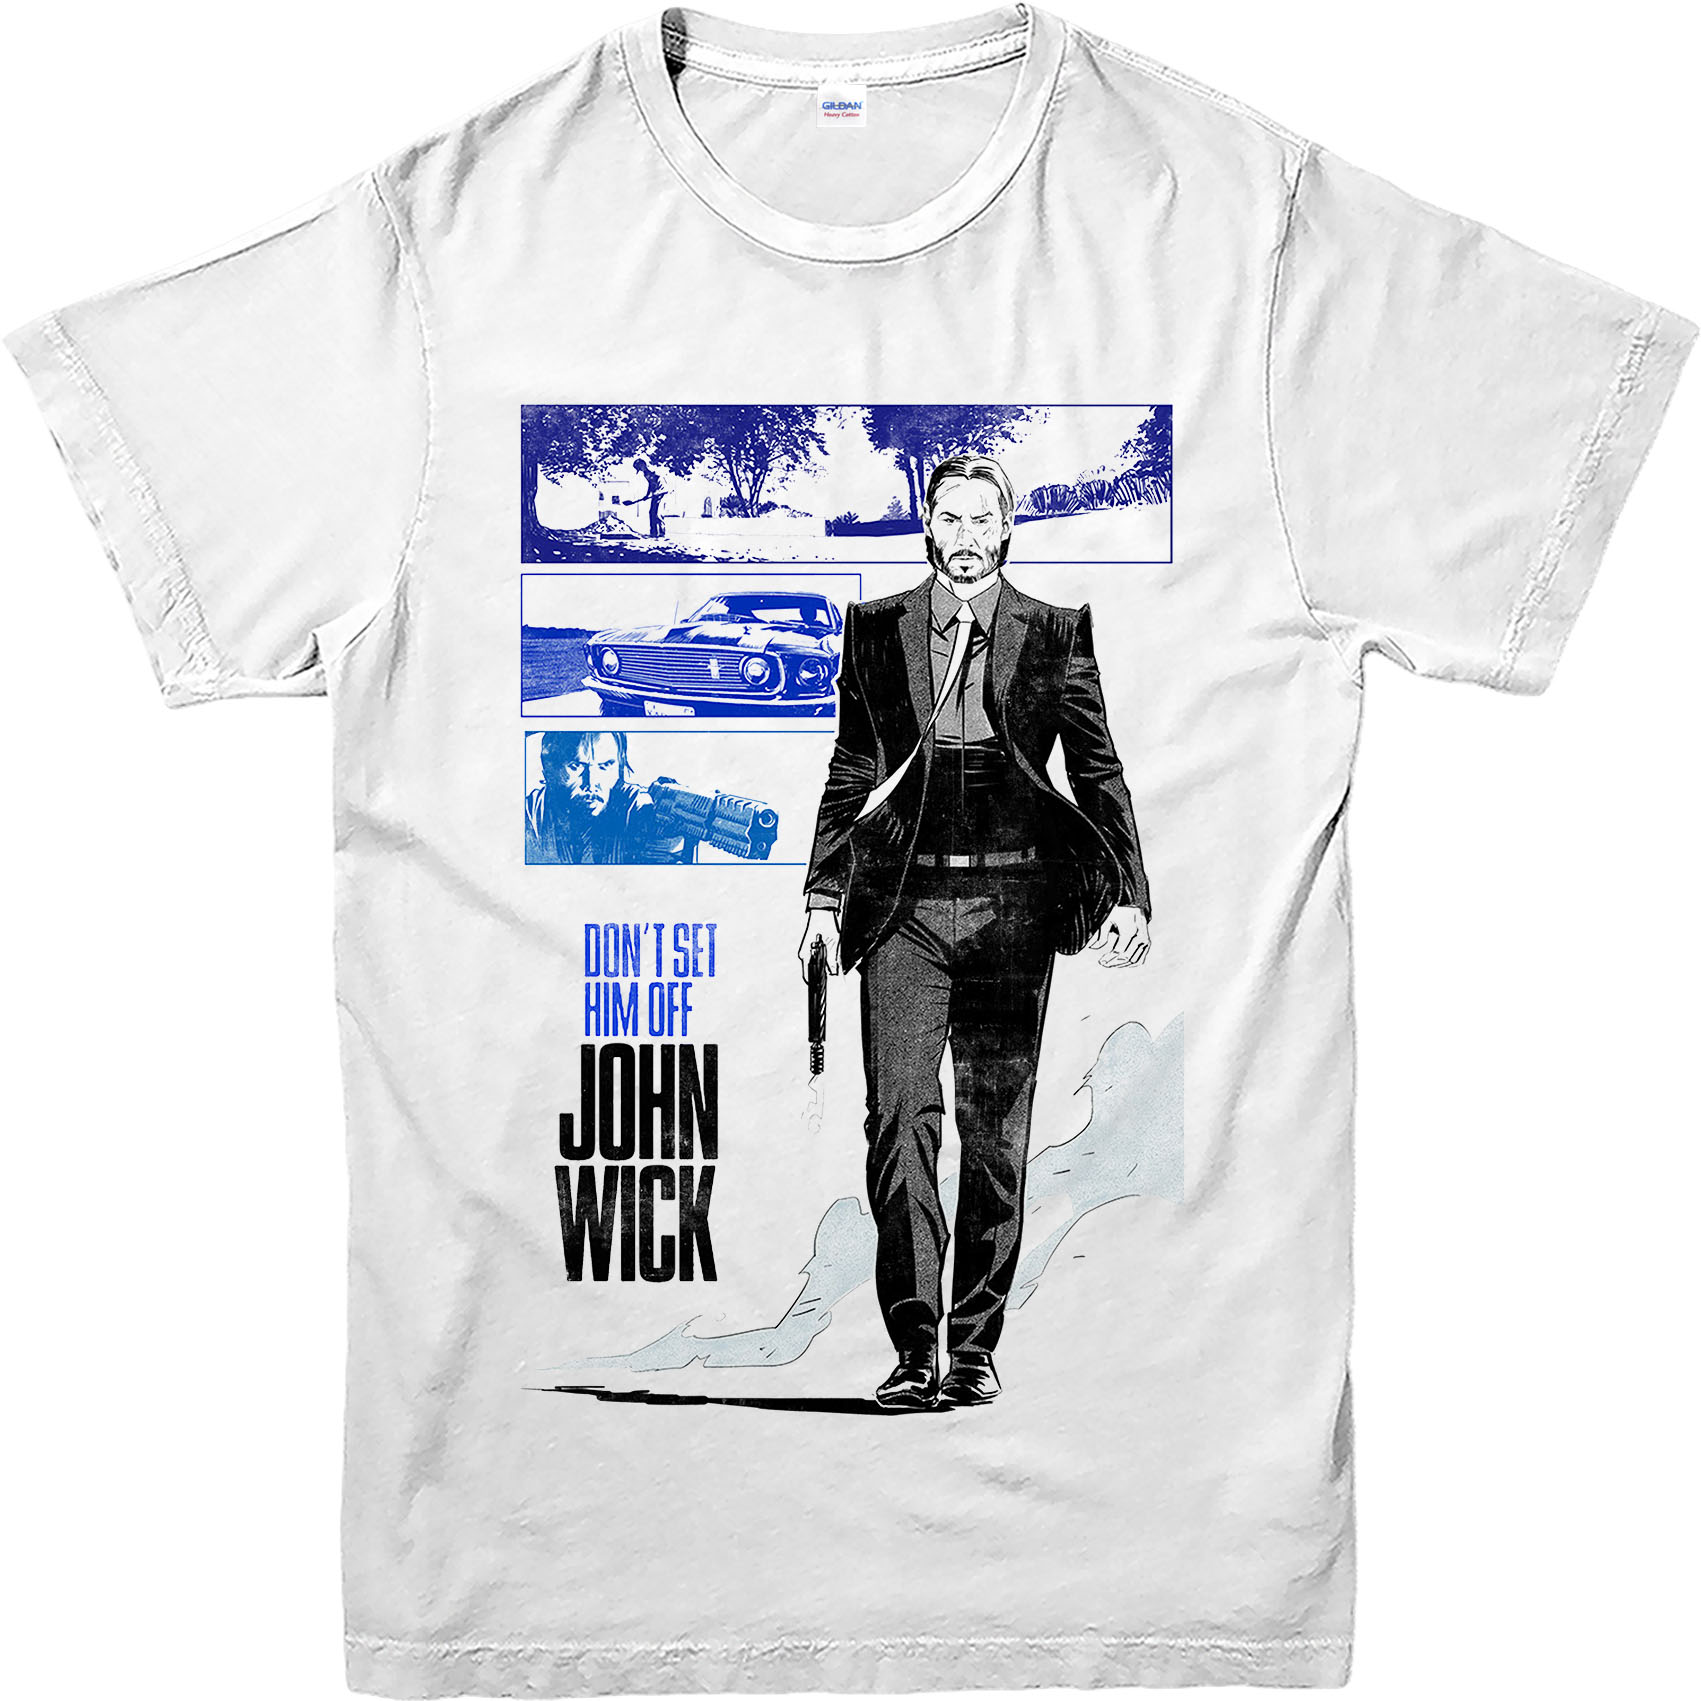 John wick t shirt john wick sketch t shirt inspired top How to sell shirts